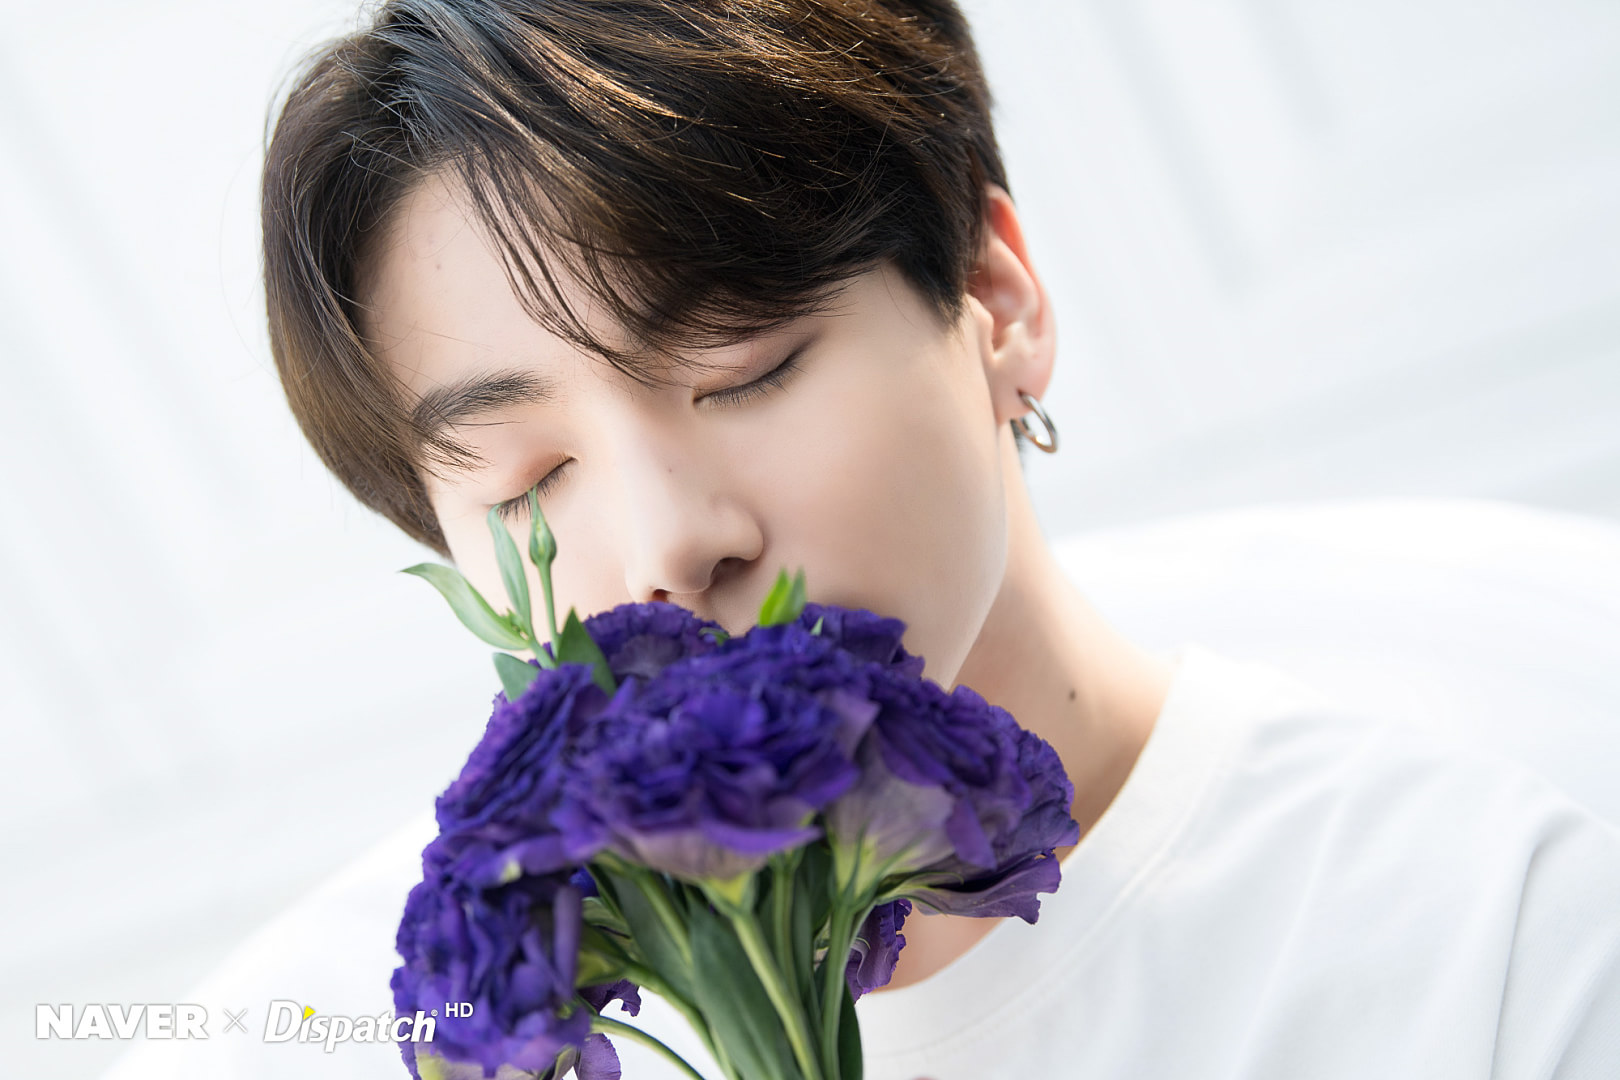 BTS x Dispatch Special White araw